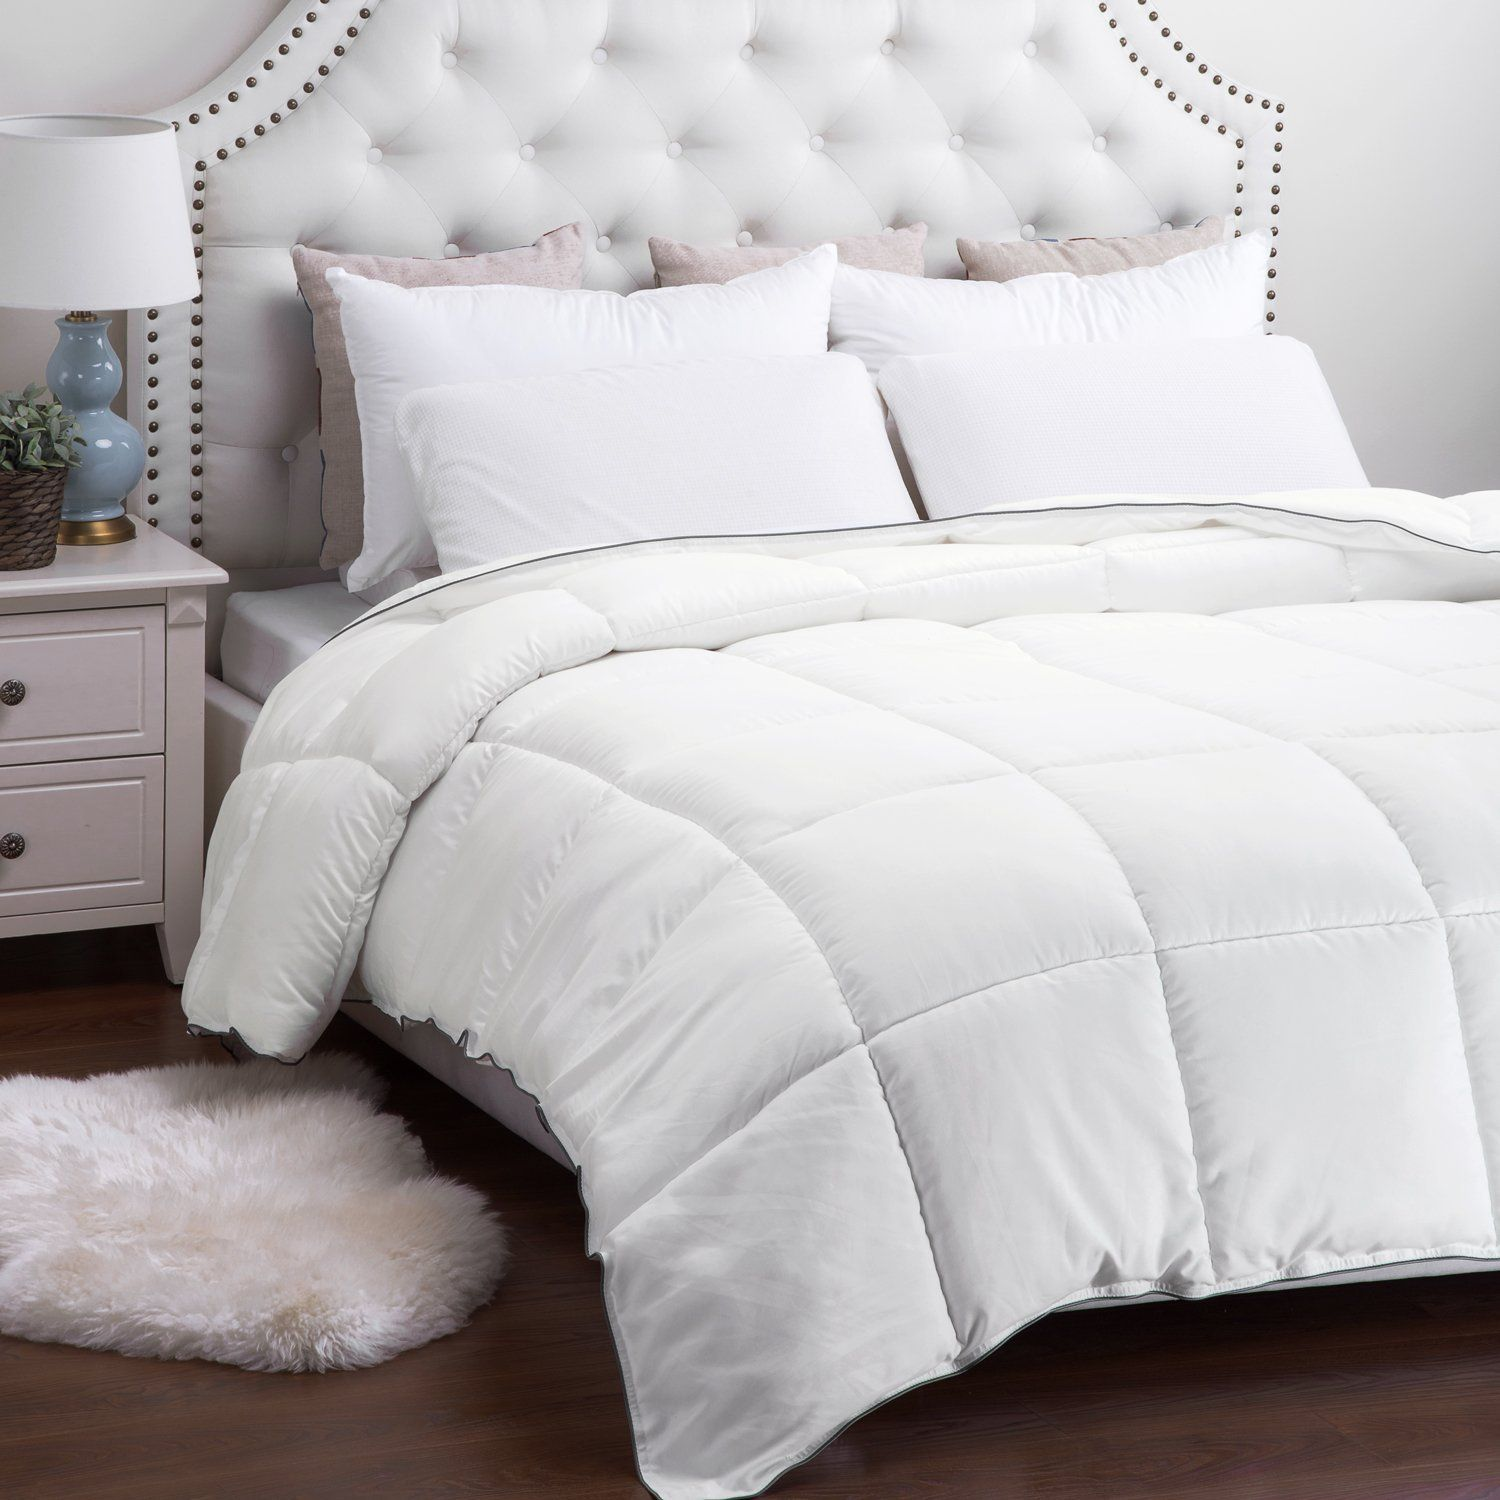 Top 10 best duvet inserts for your family in 2017